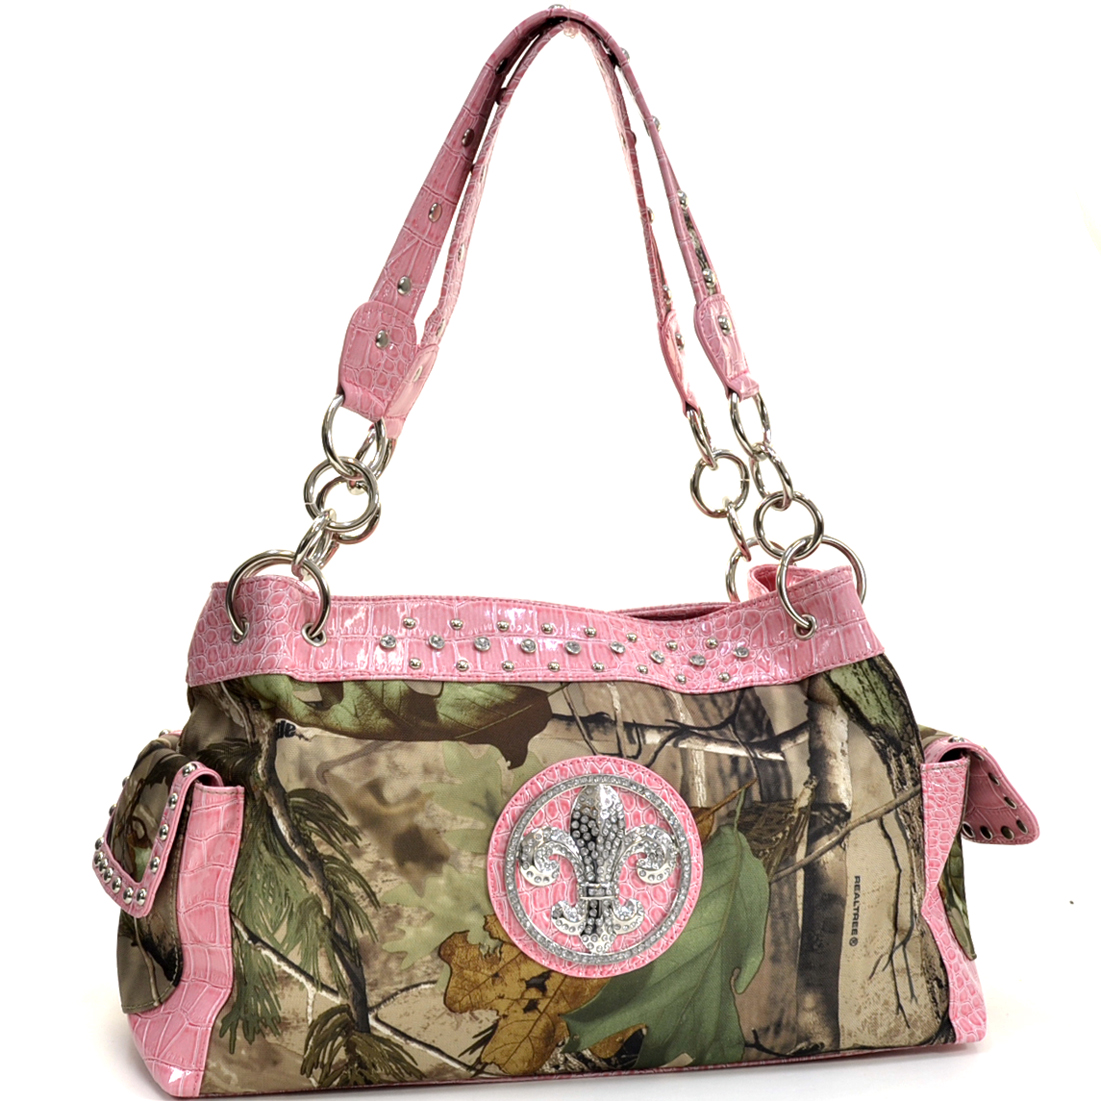 Realtree® Camouflage Fleur de Lis Accent Shoulder Bag Handbag - Light Pink